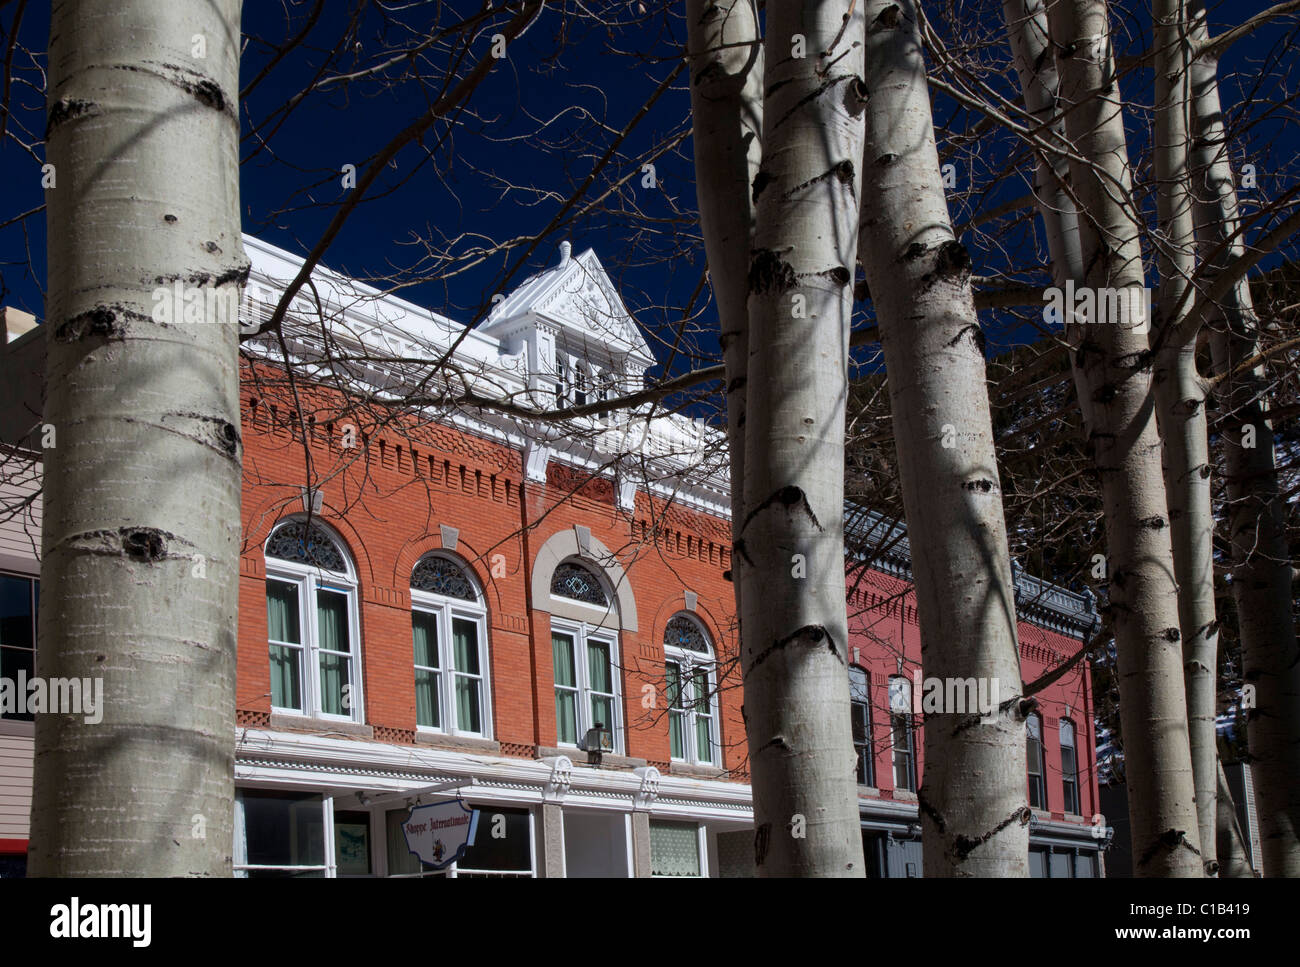 Georgetown, Colorado - Buildings along the main street in an historic silver mining town. - Stock Image